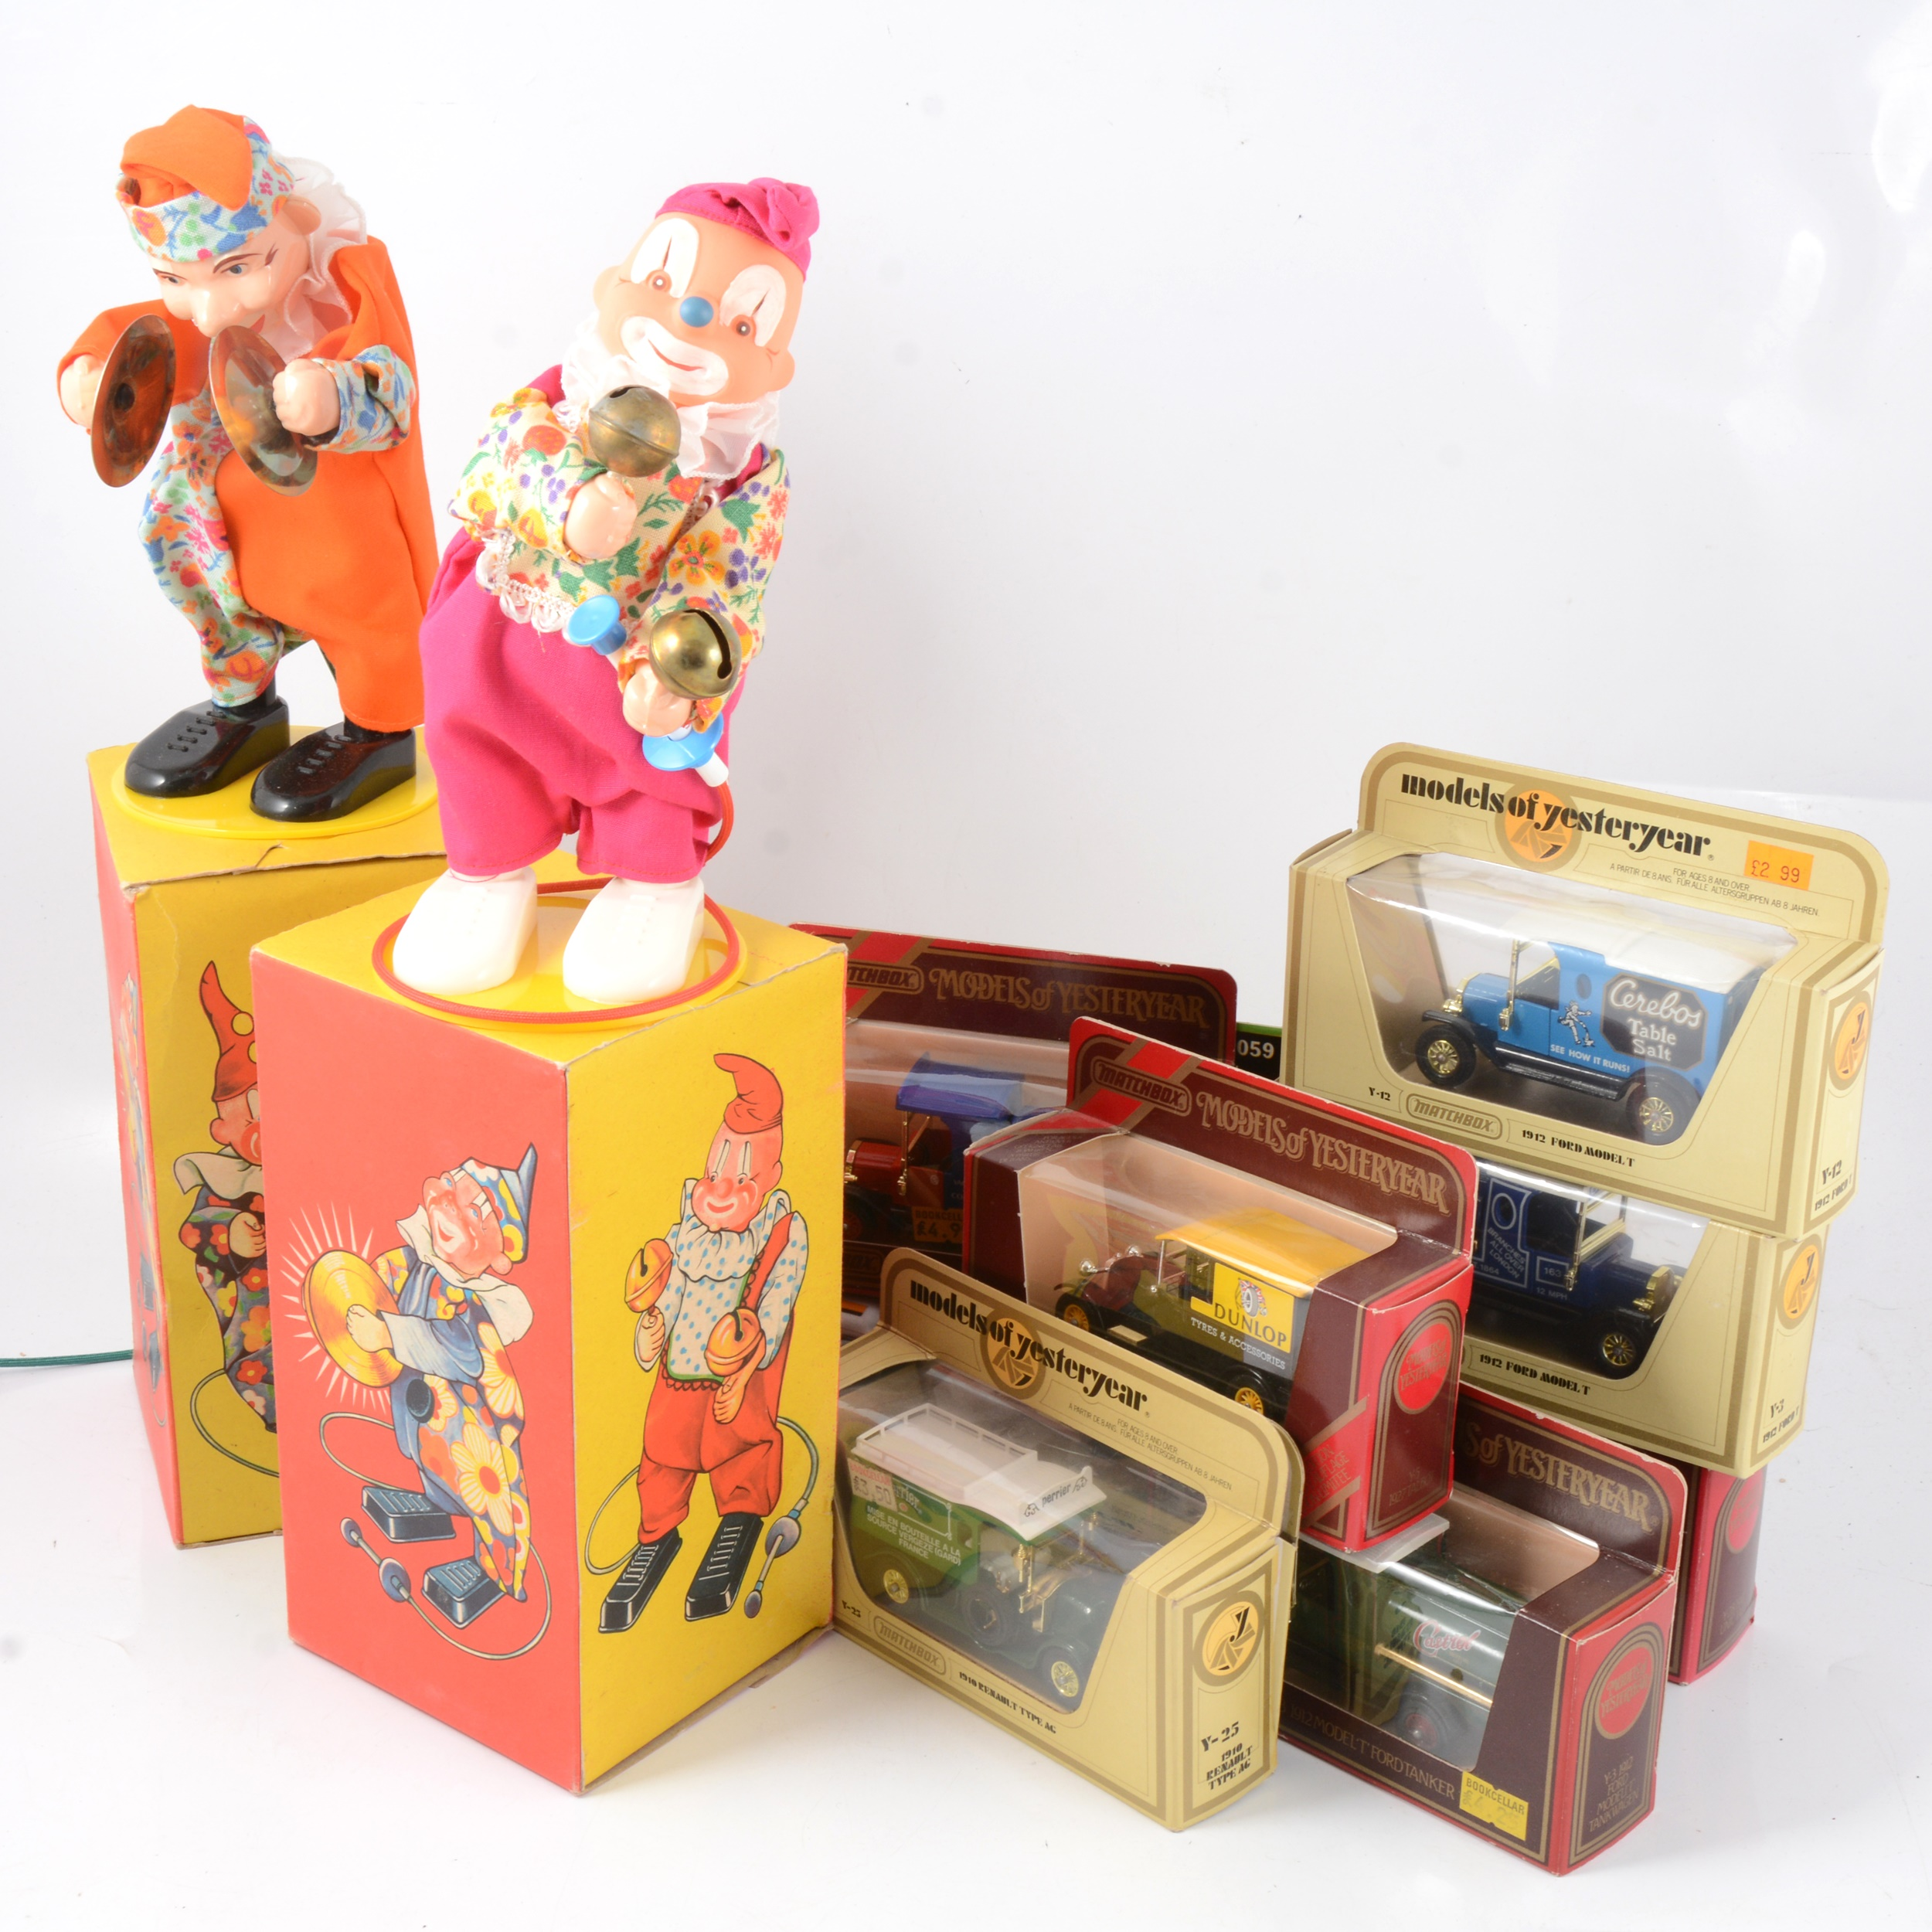 Two Sonni German wind-up clown toys etc